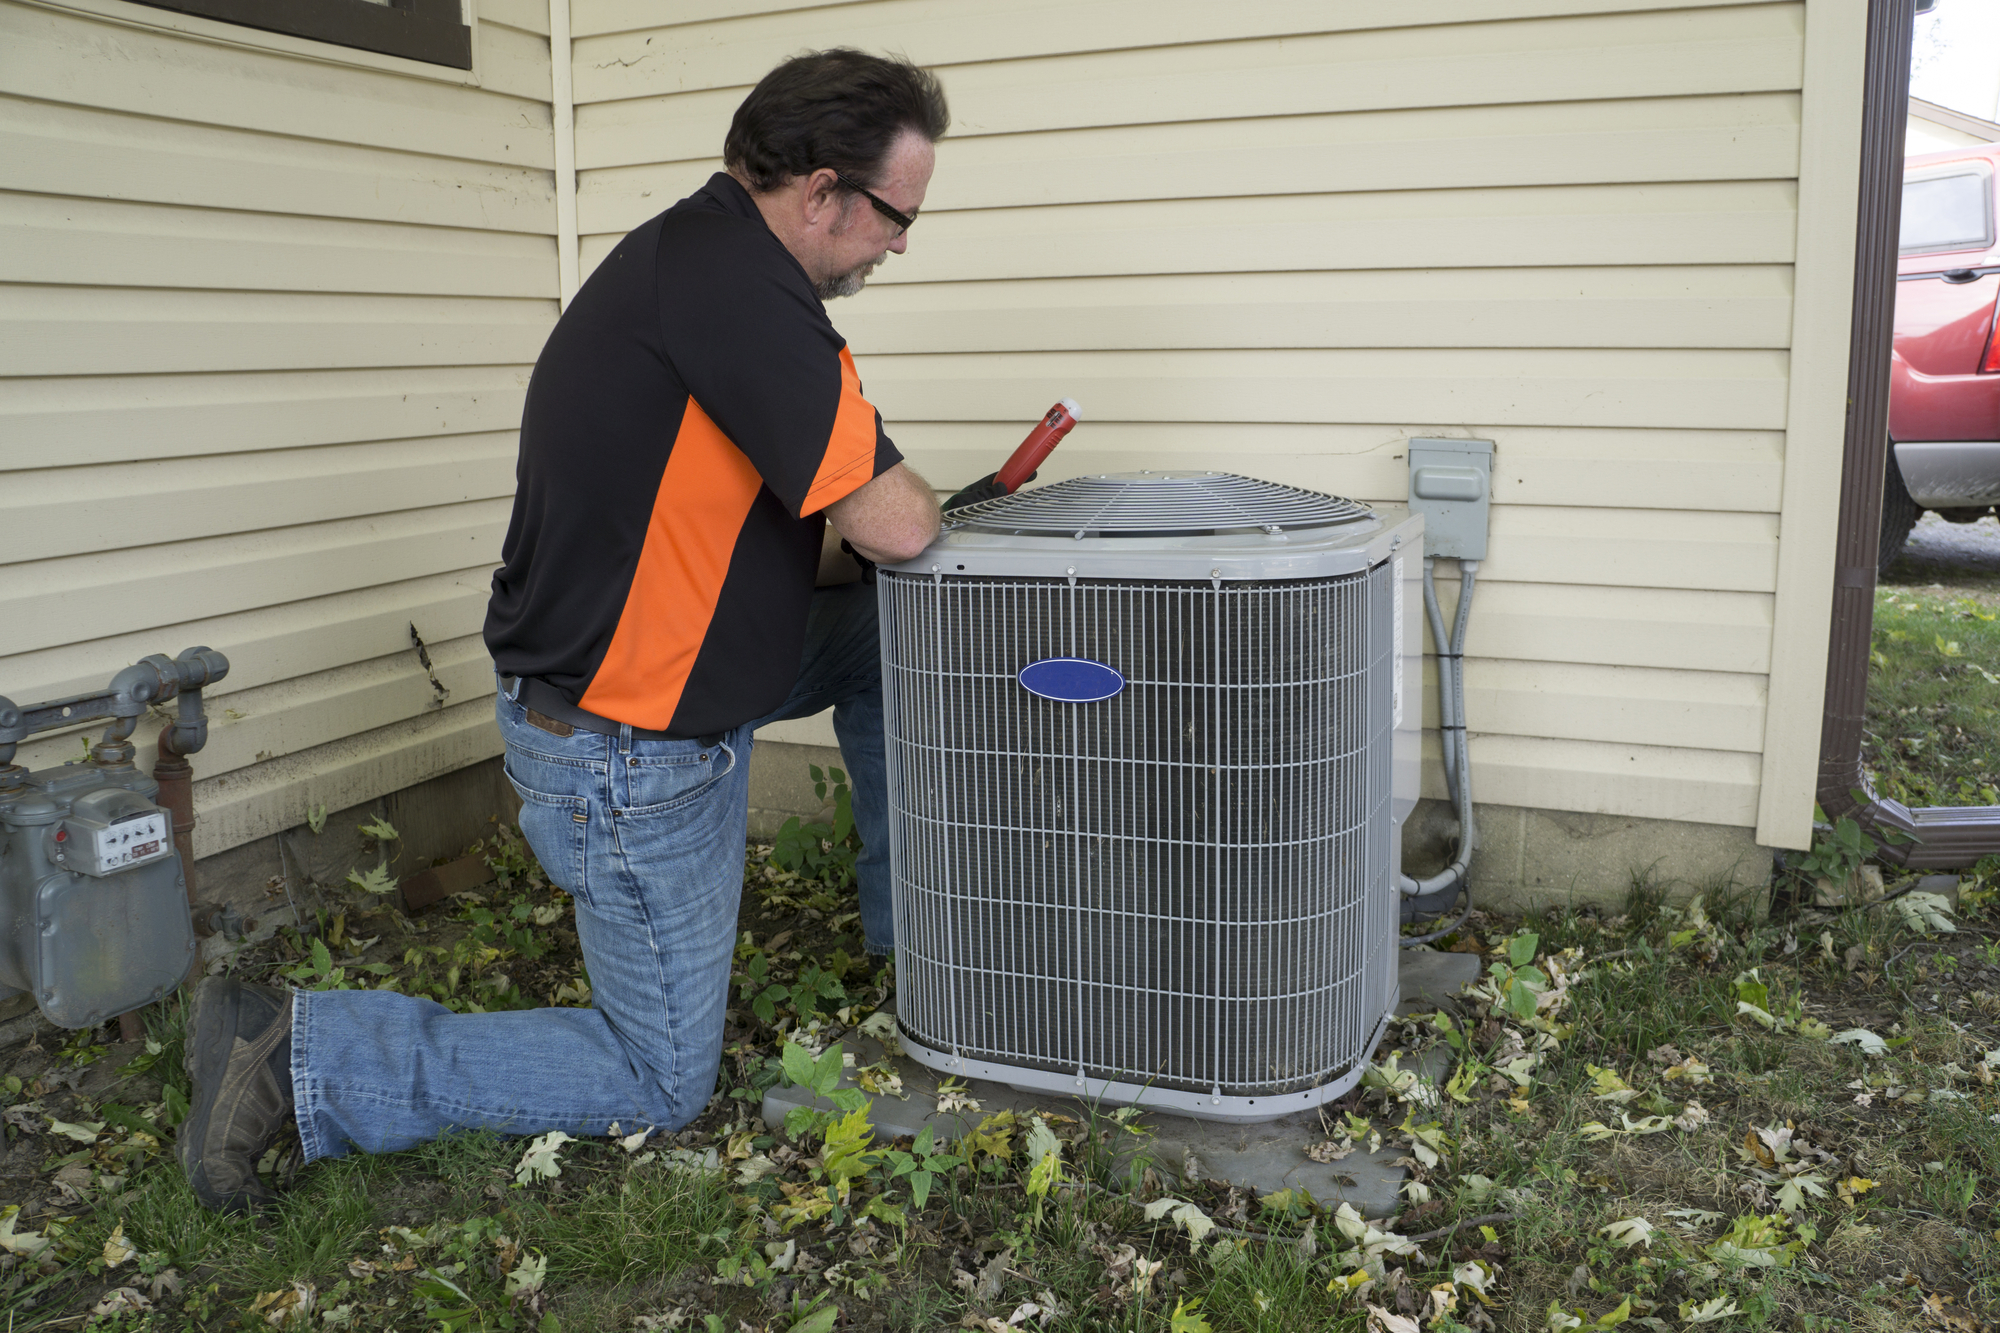 Repairman Checking Outside Air Conditioning Unit For Voltage